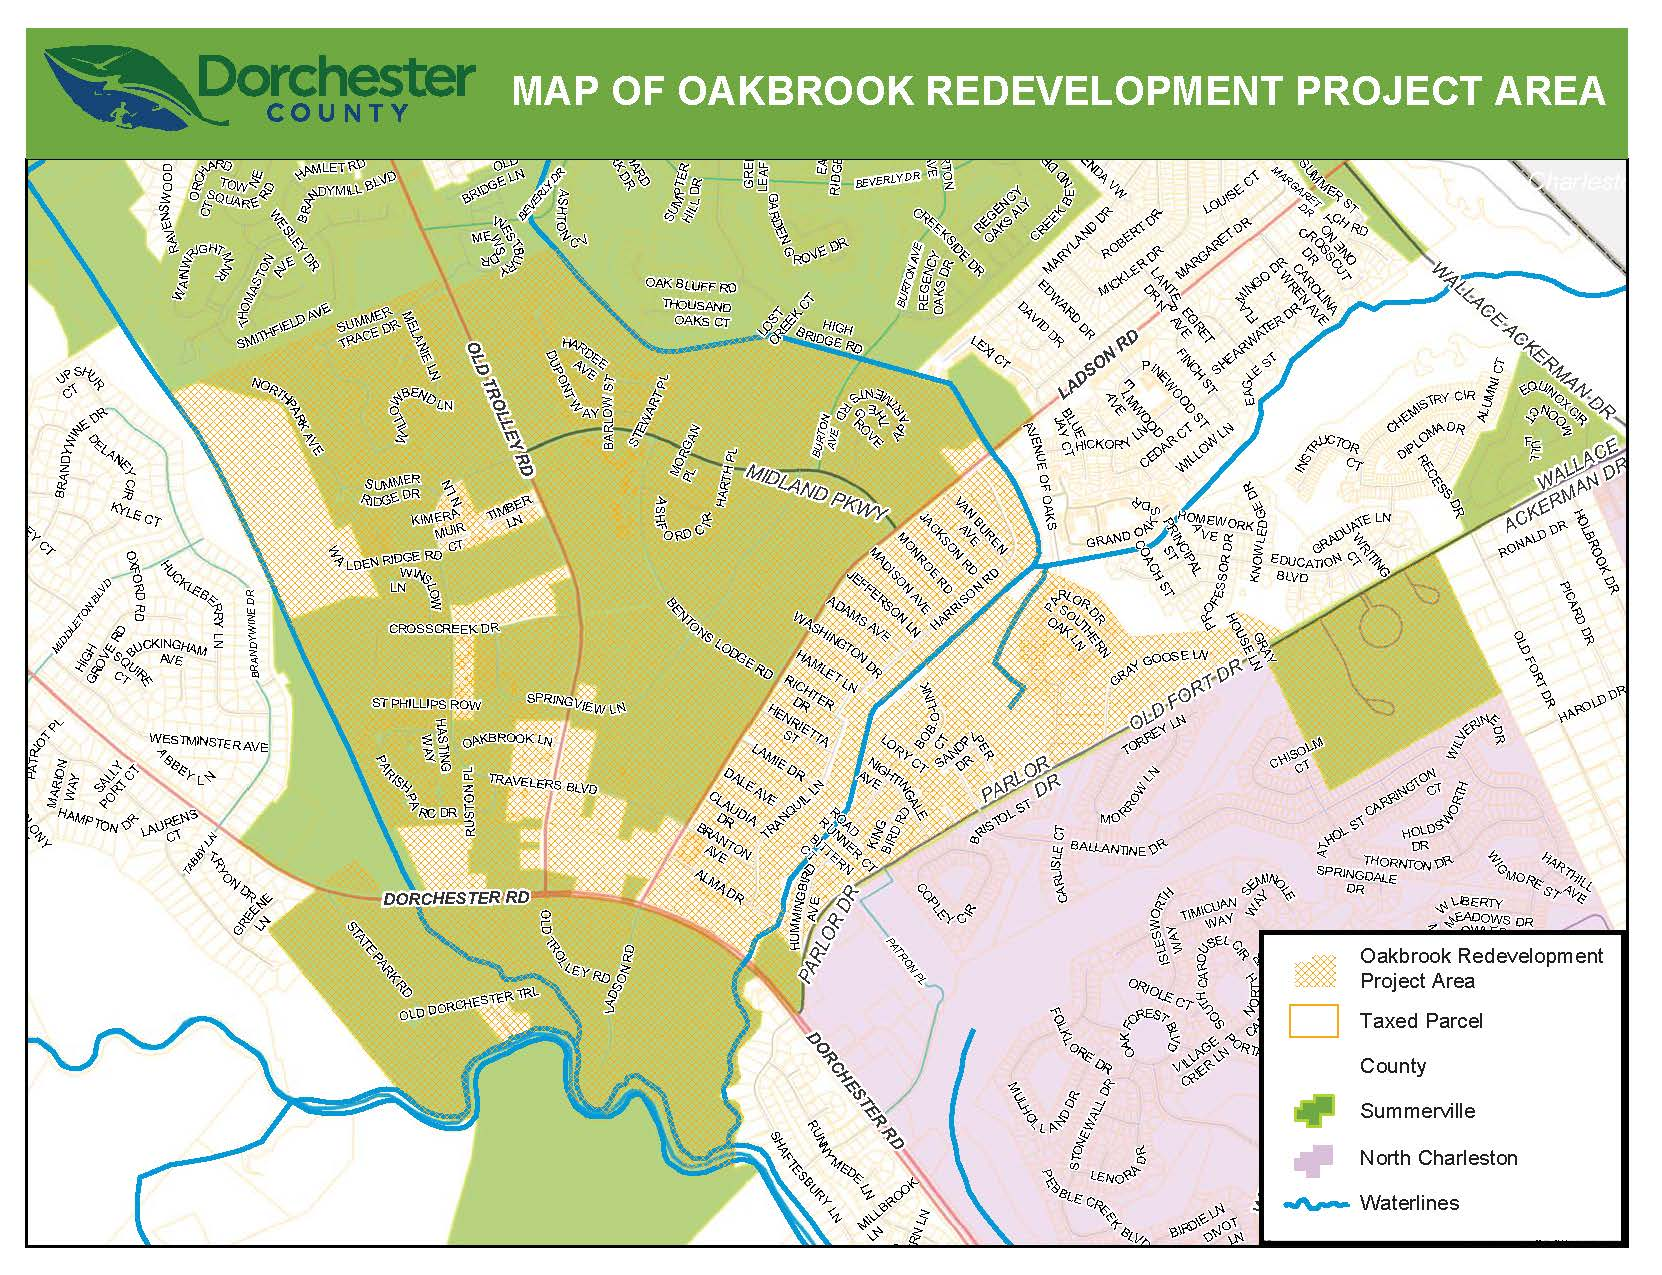 Oakbrook Redevelopment Project Area